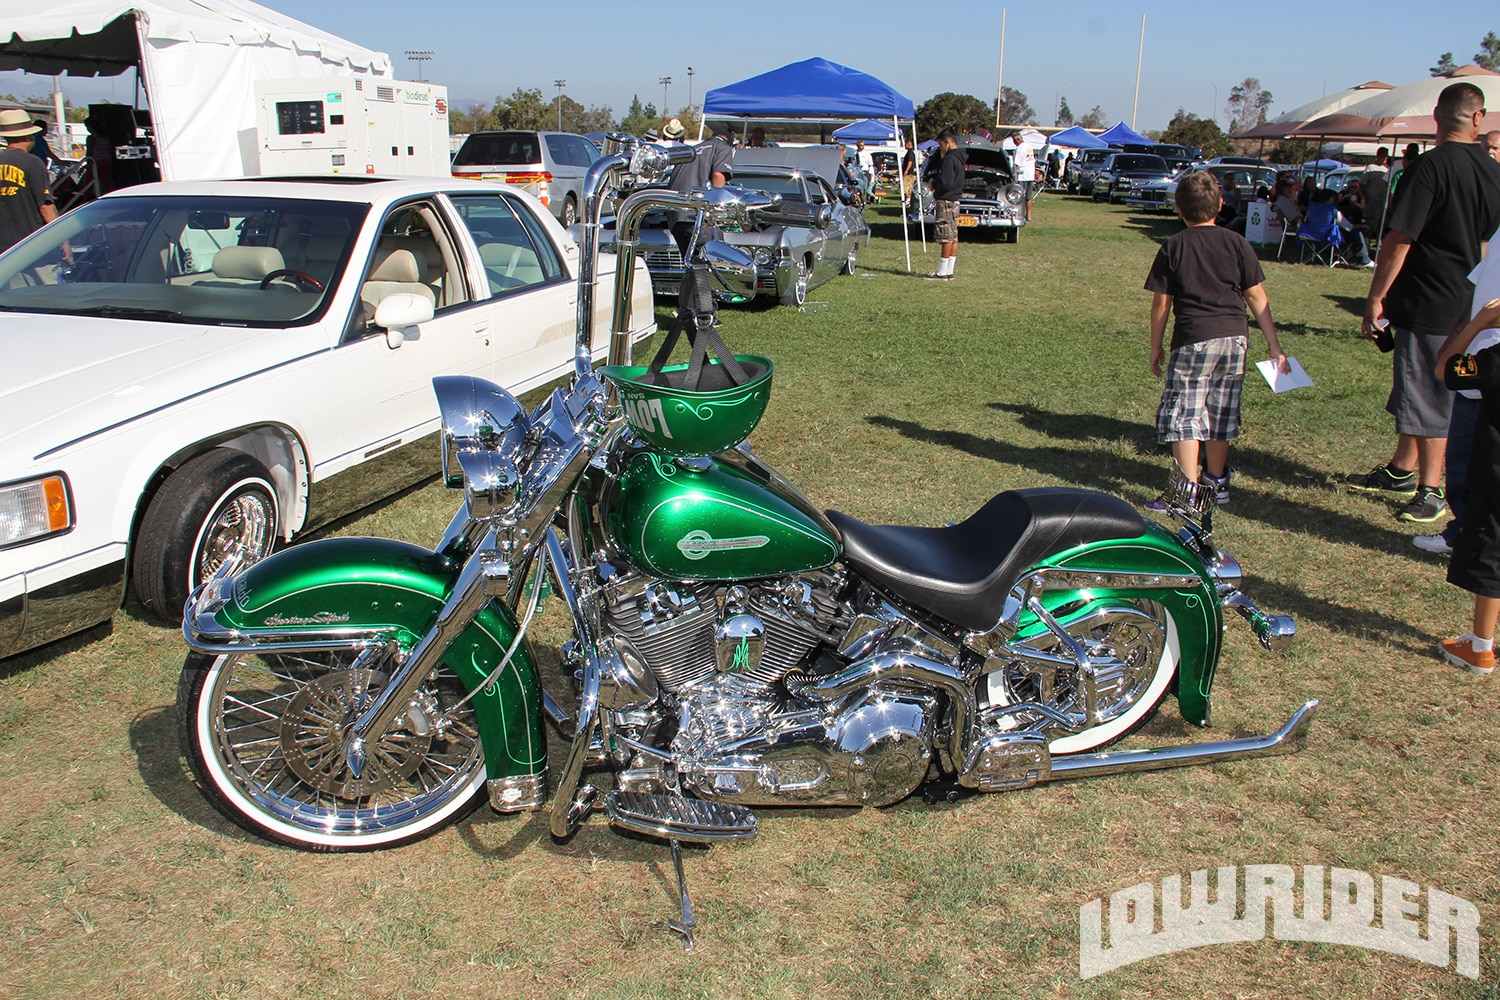 Lowrider Car Show 2018 >> Oldies Car Show And Concert - Lowrider Magazine